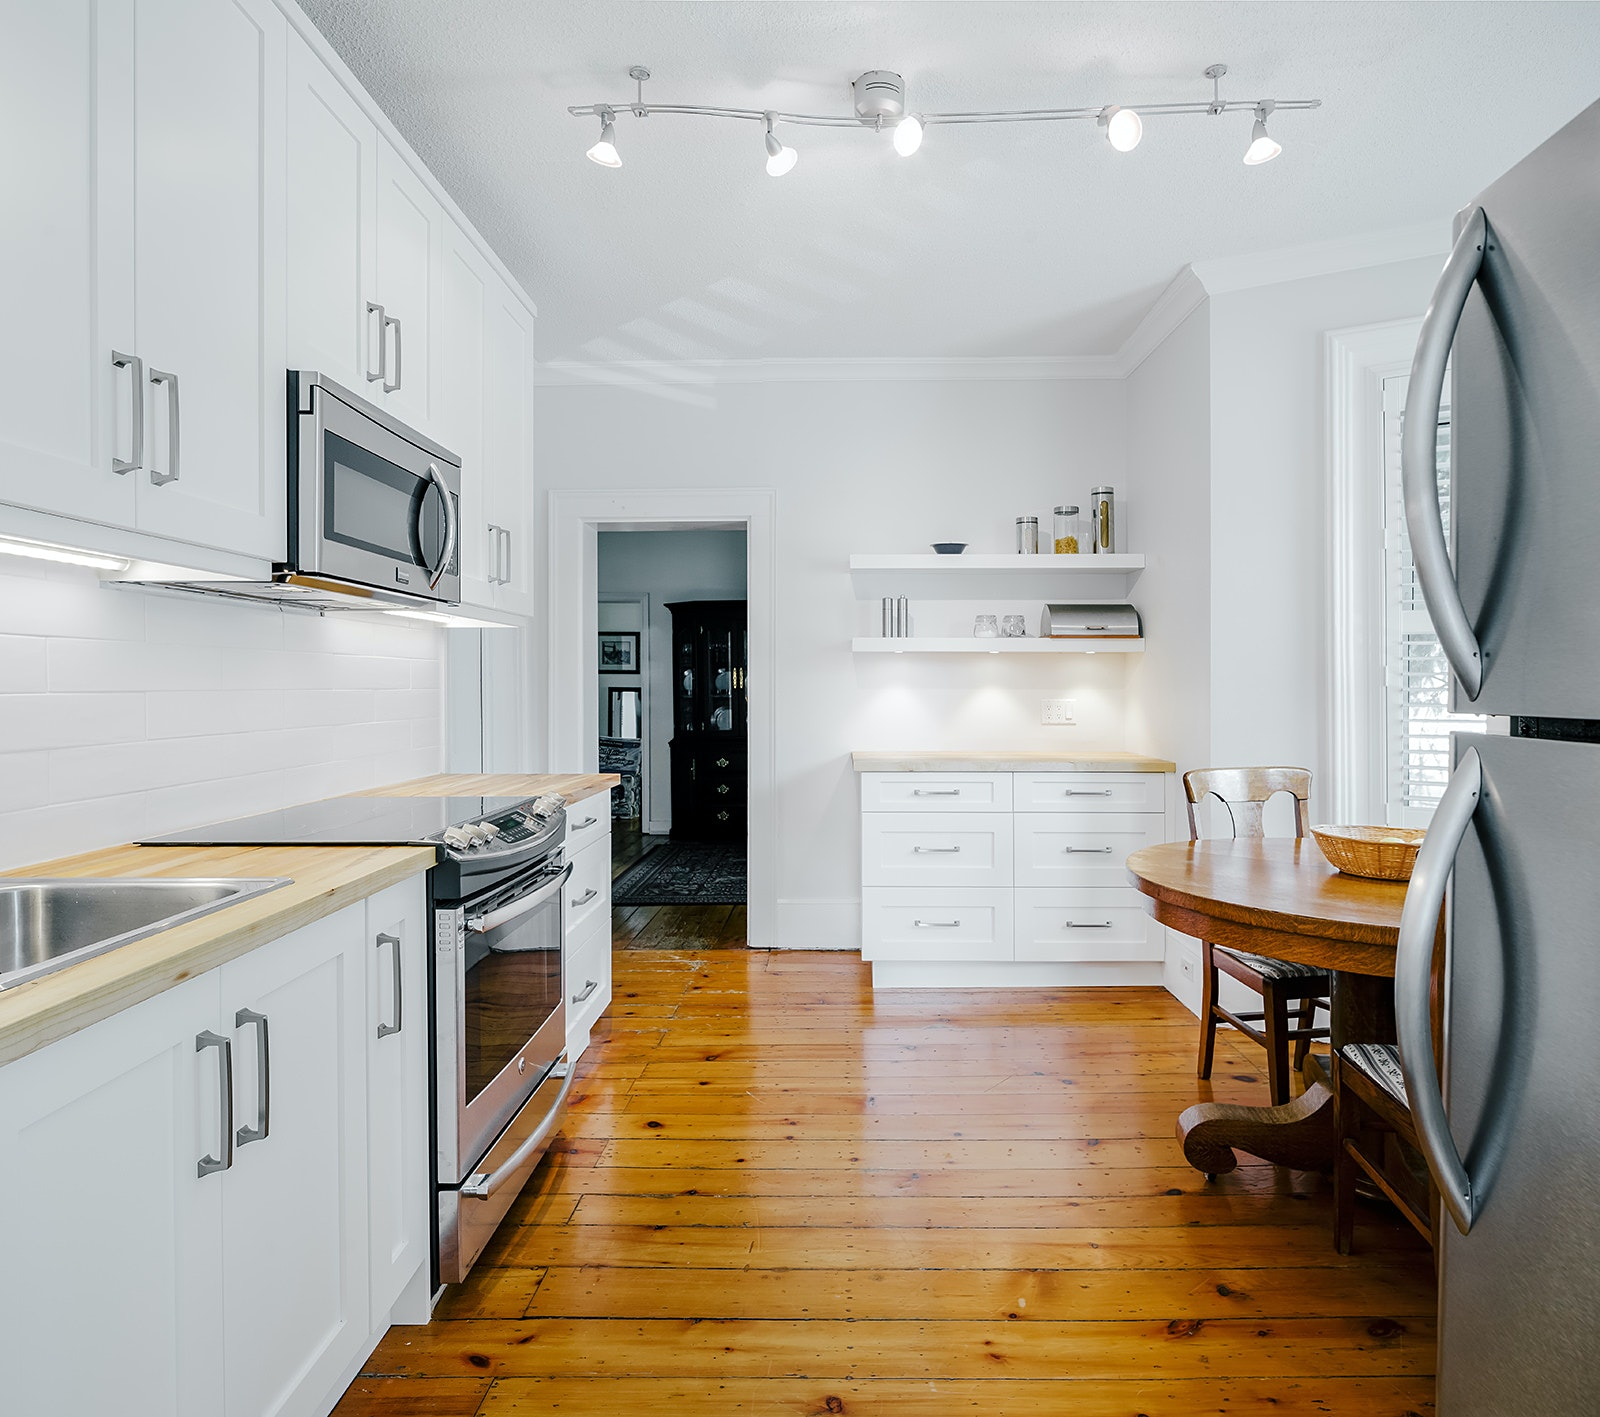 Full view when entering kitchen — Real Estate Photography by Scott Webb